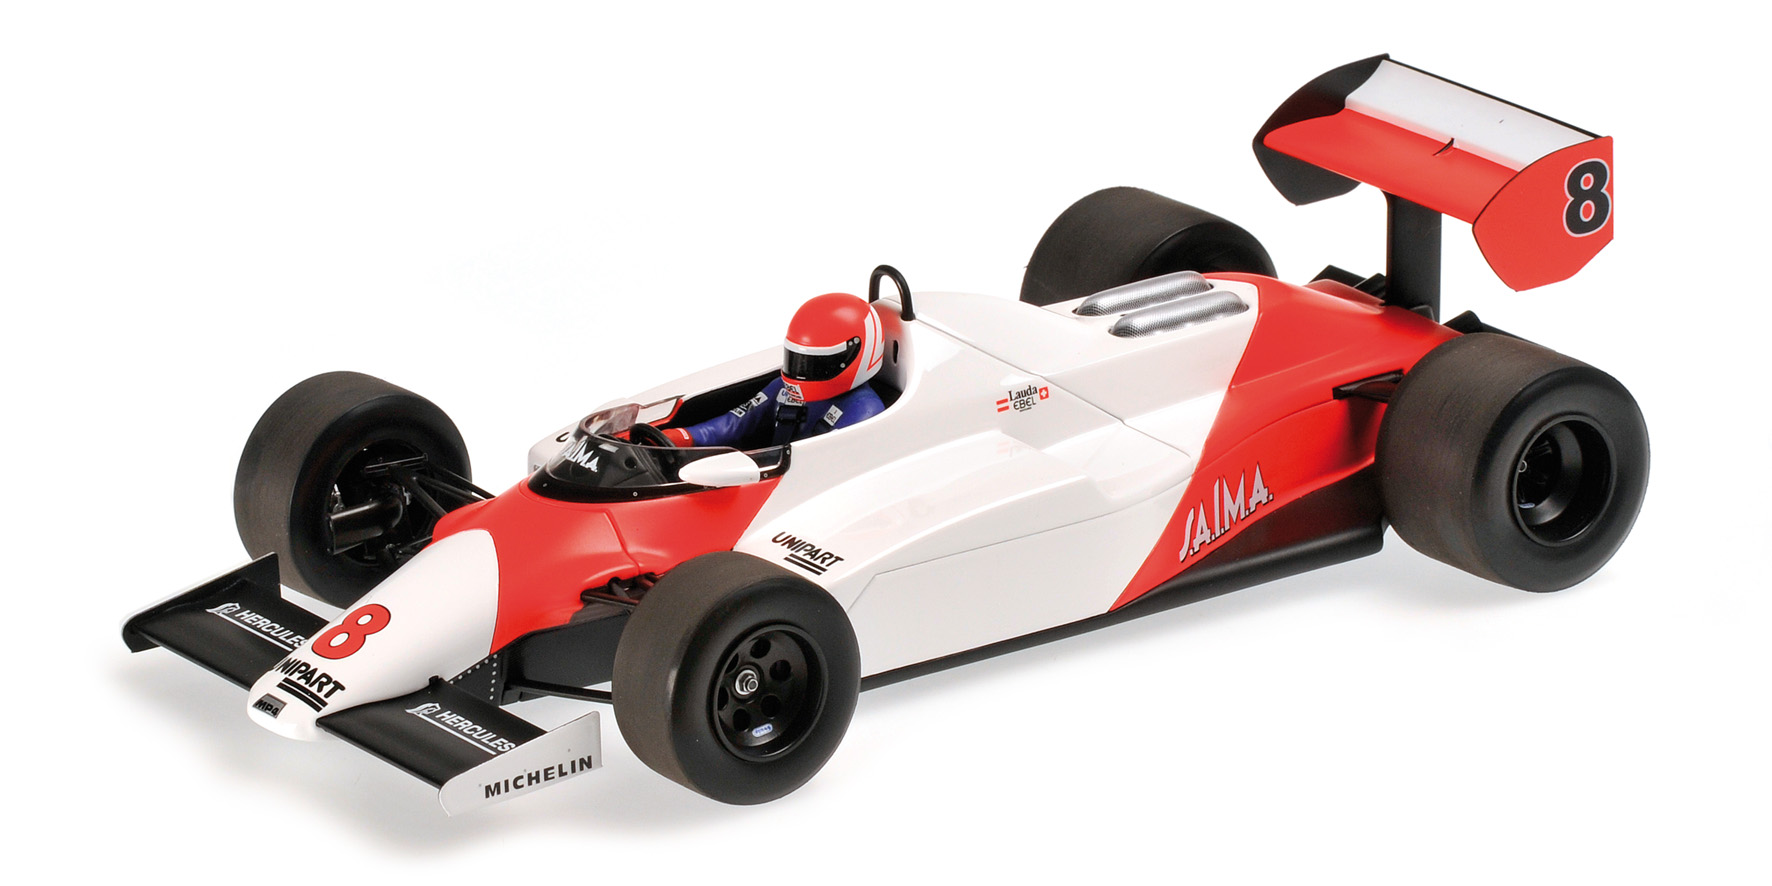 modellauto mclaren ford mp4 1c niki lauda 1983. Black Bedroom Furniture Sets. Home Design Ideas